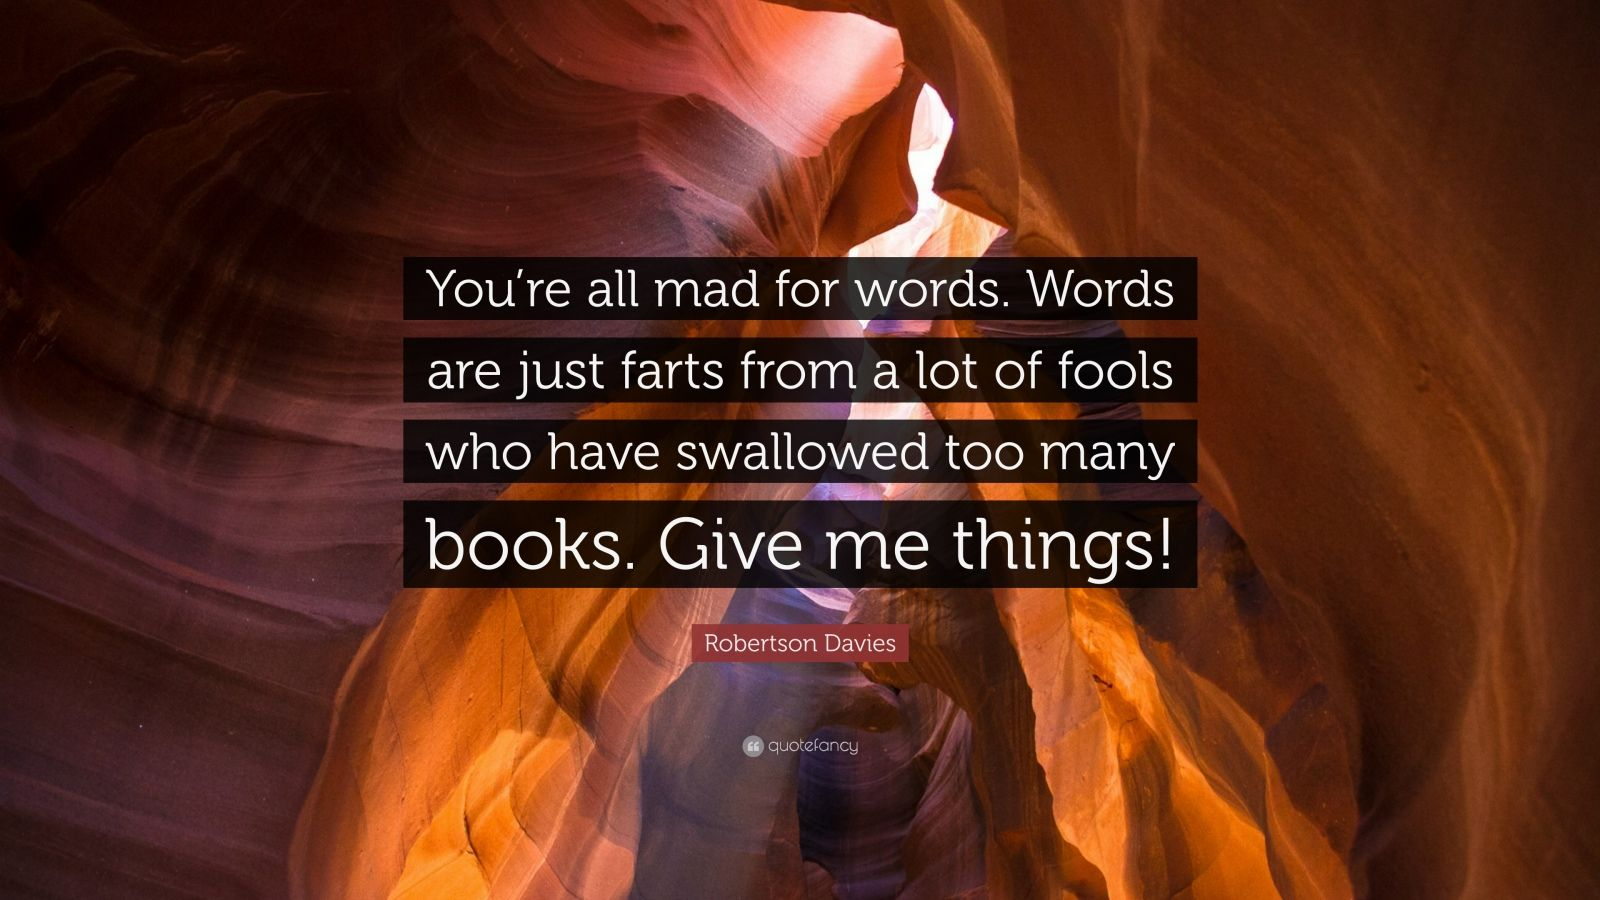 """Robertson Davies Quote: """"You're all mad for words. Words are just farts from a lot of fools who have swallowed too many books. Give me things!"""""""